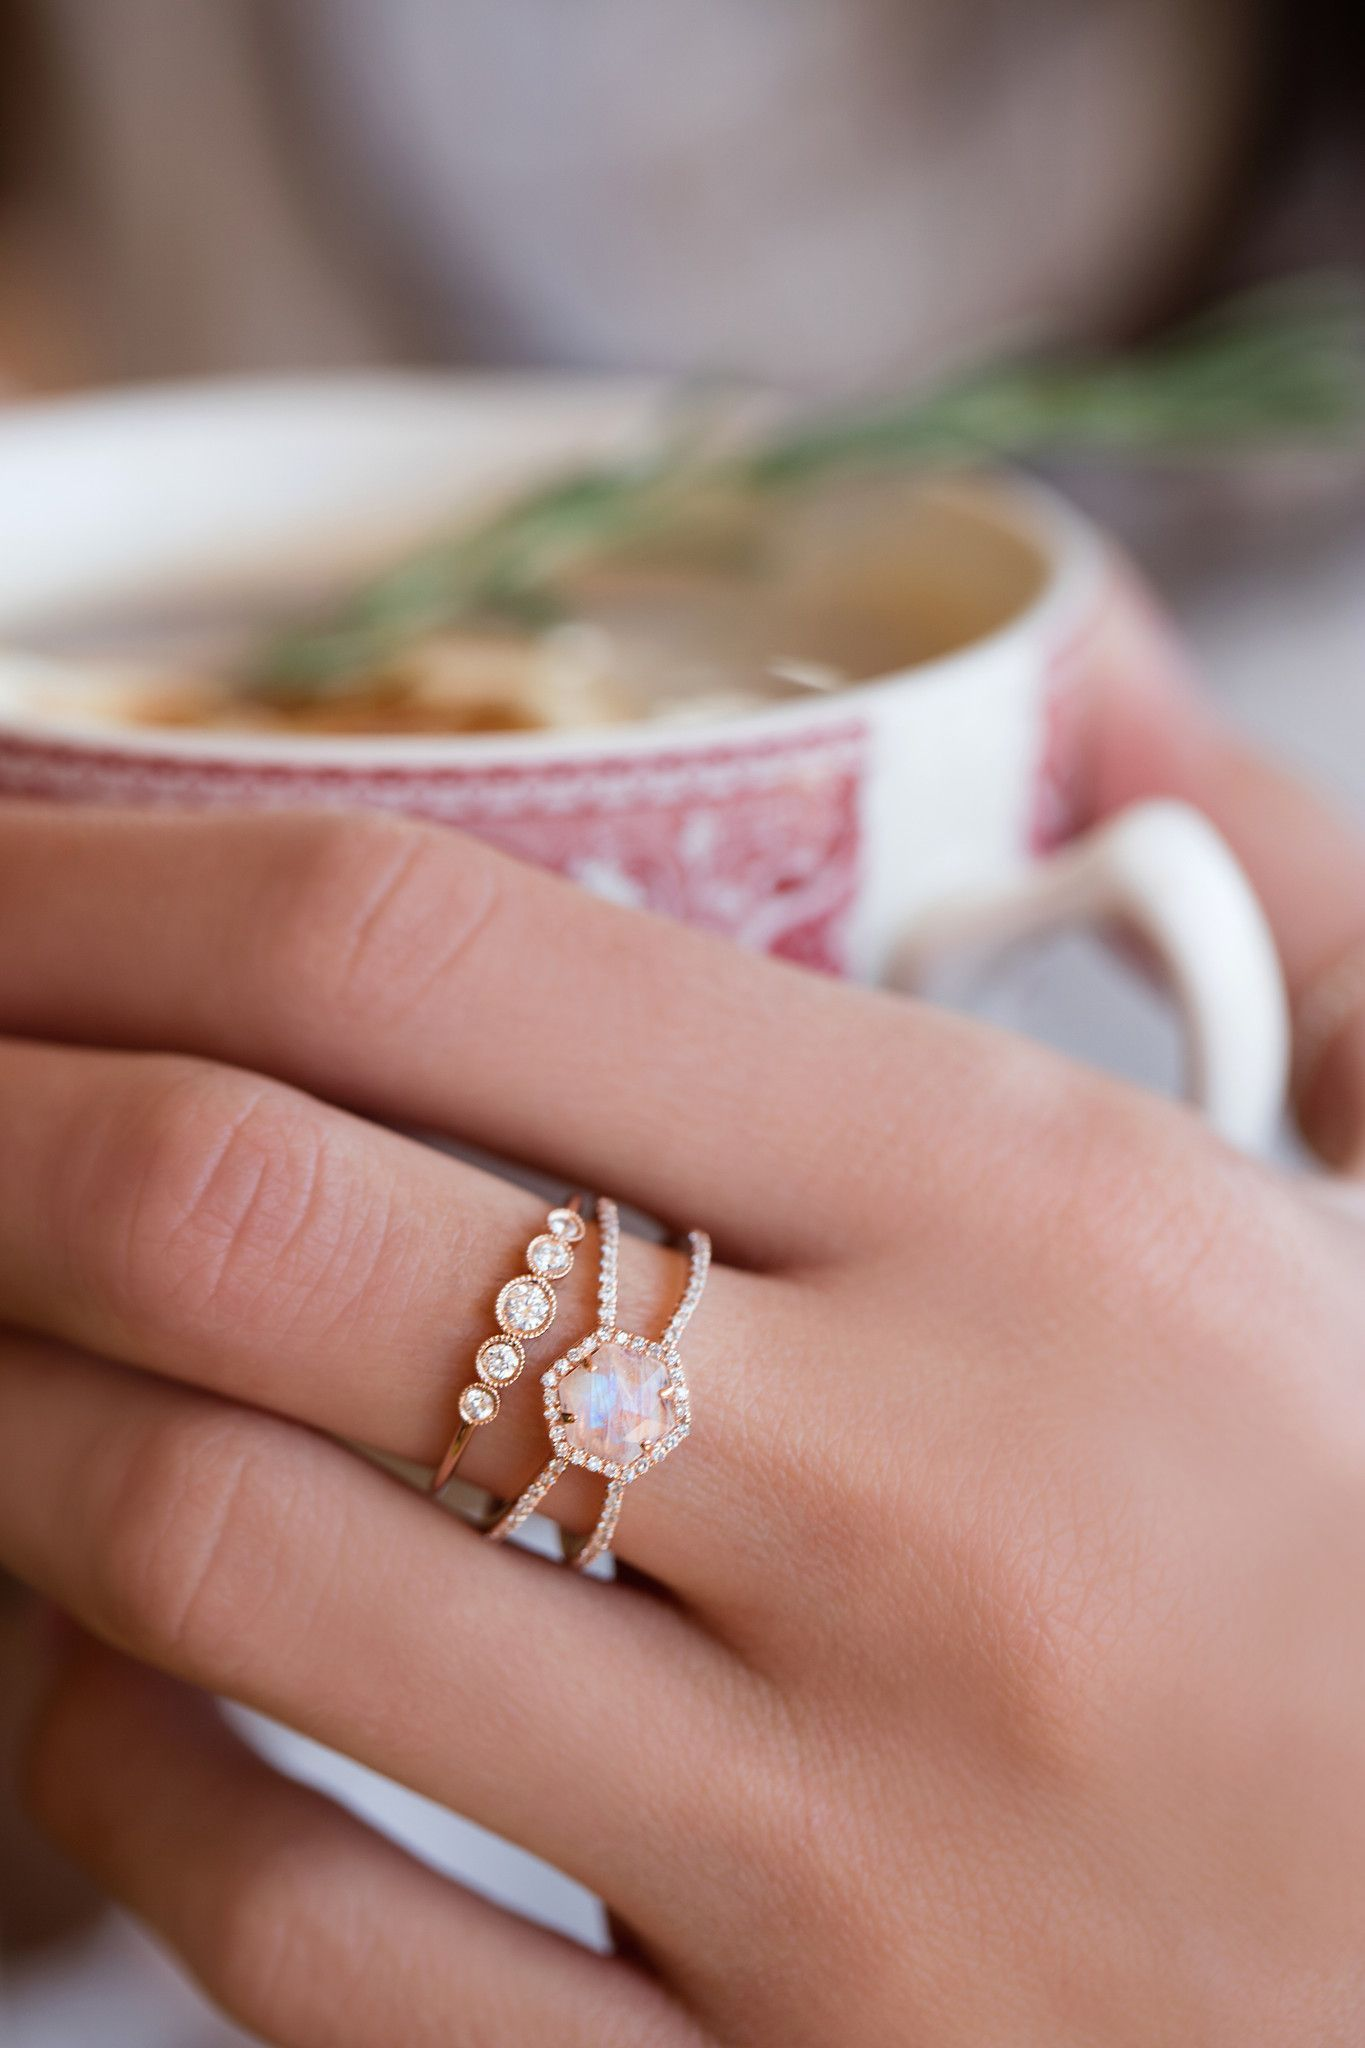 Here is a *totally* different-looking bridal set: an engagement ring ...